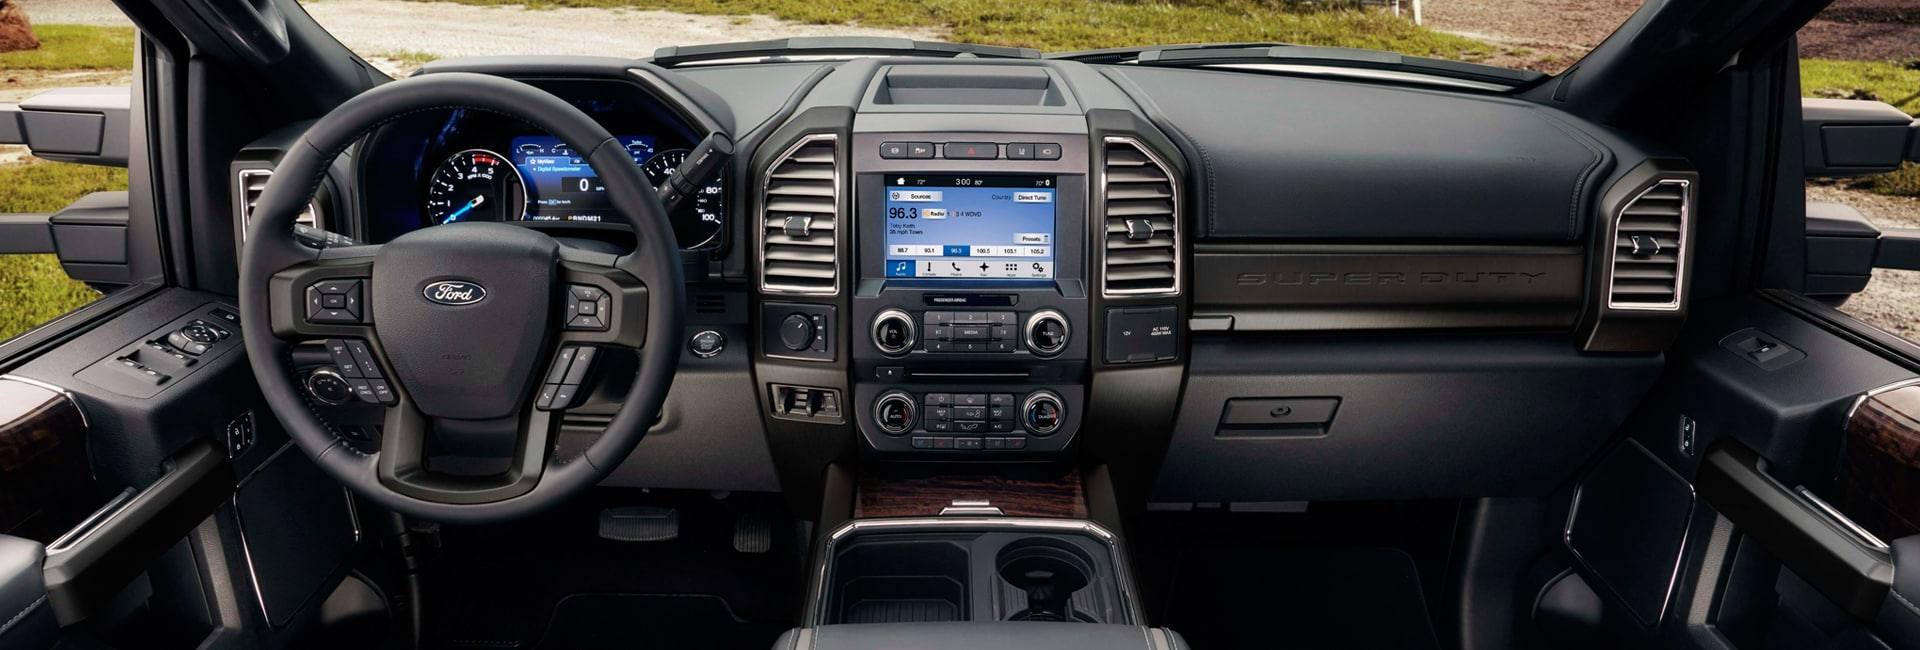 Ford F-250 Interior Vehicle Features